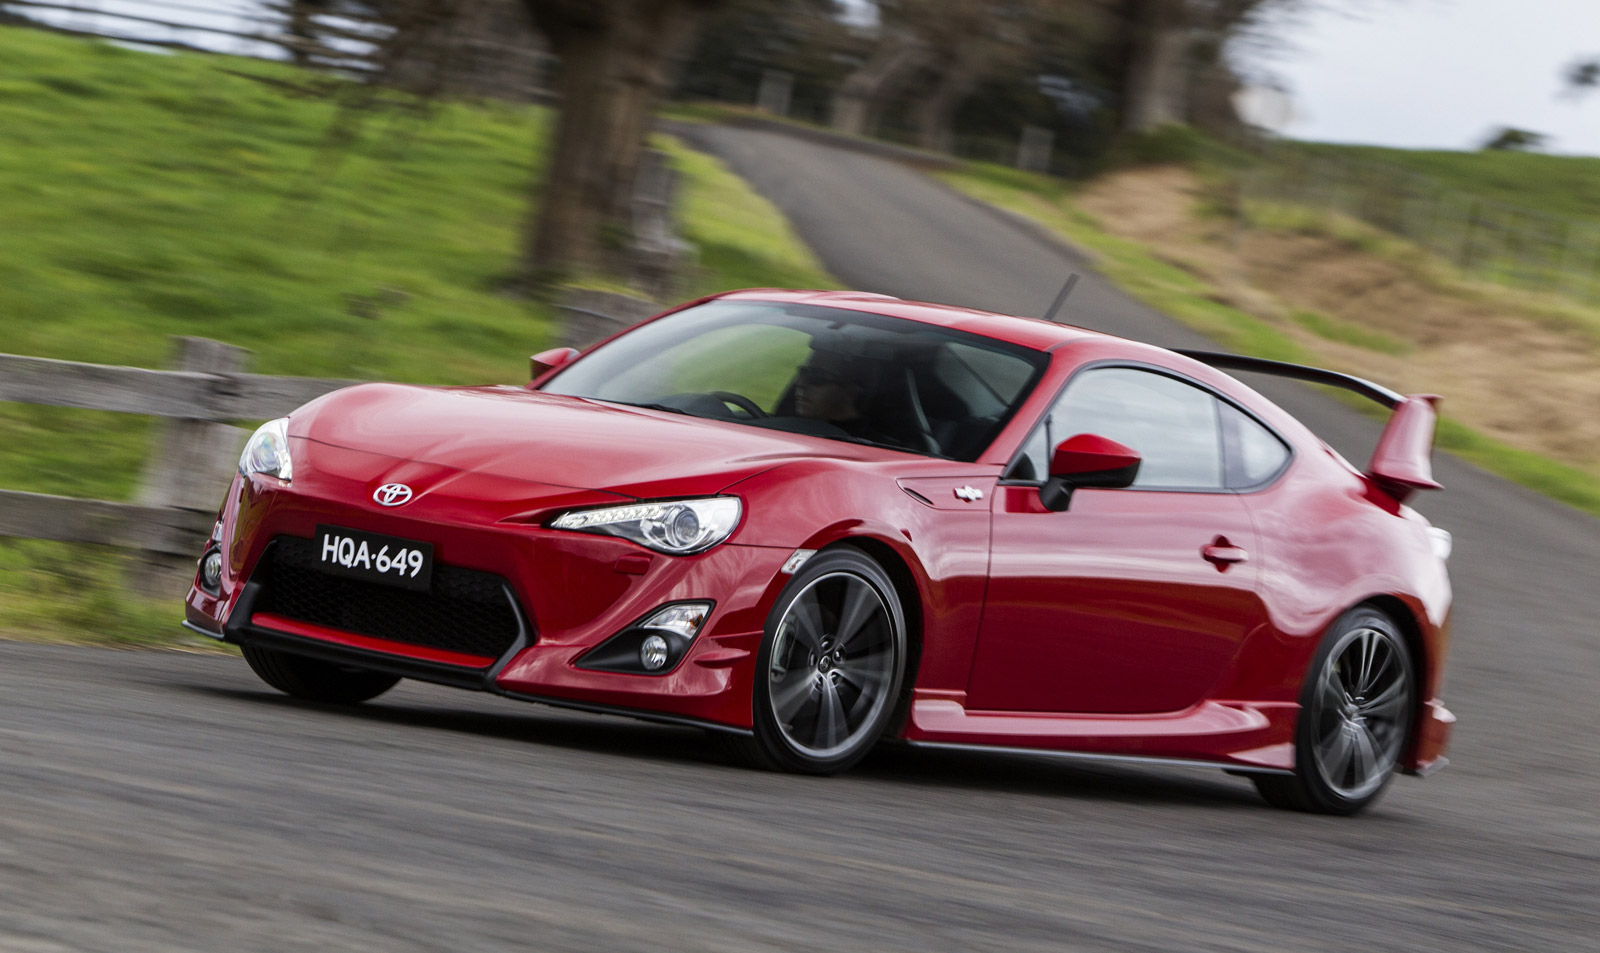 Toyota GT 86 Aero Kit Hints At Upgrades For 2013 Scion FR-S